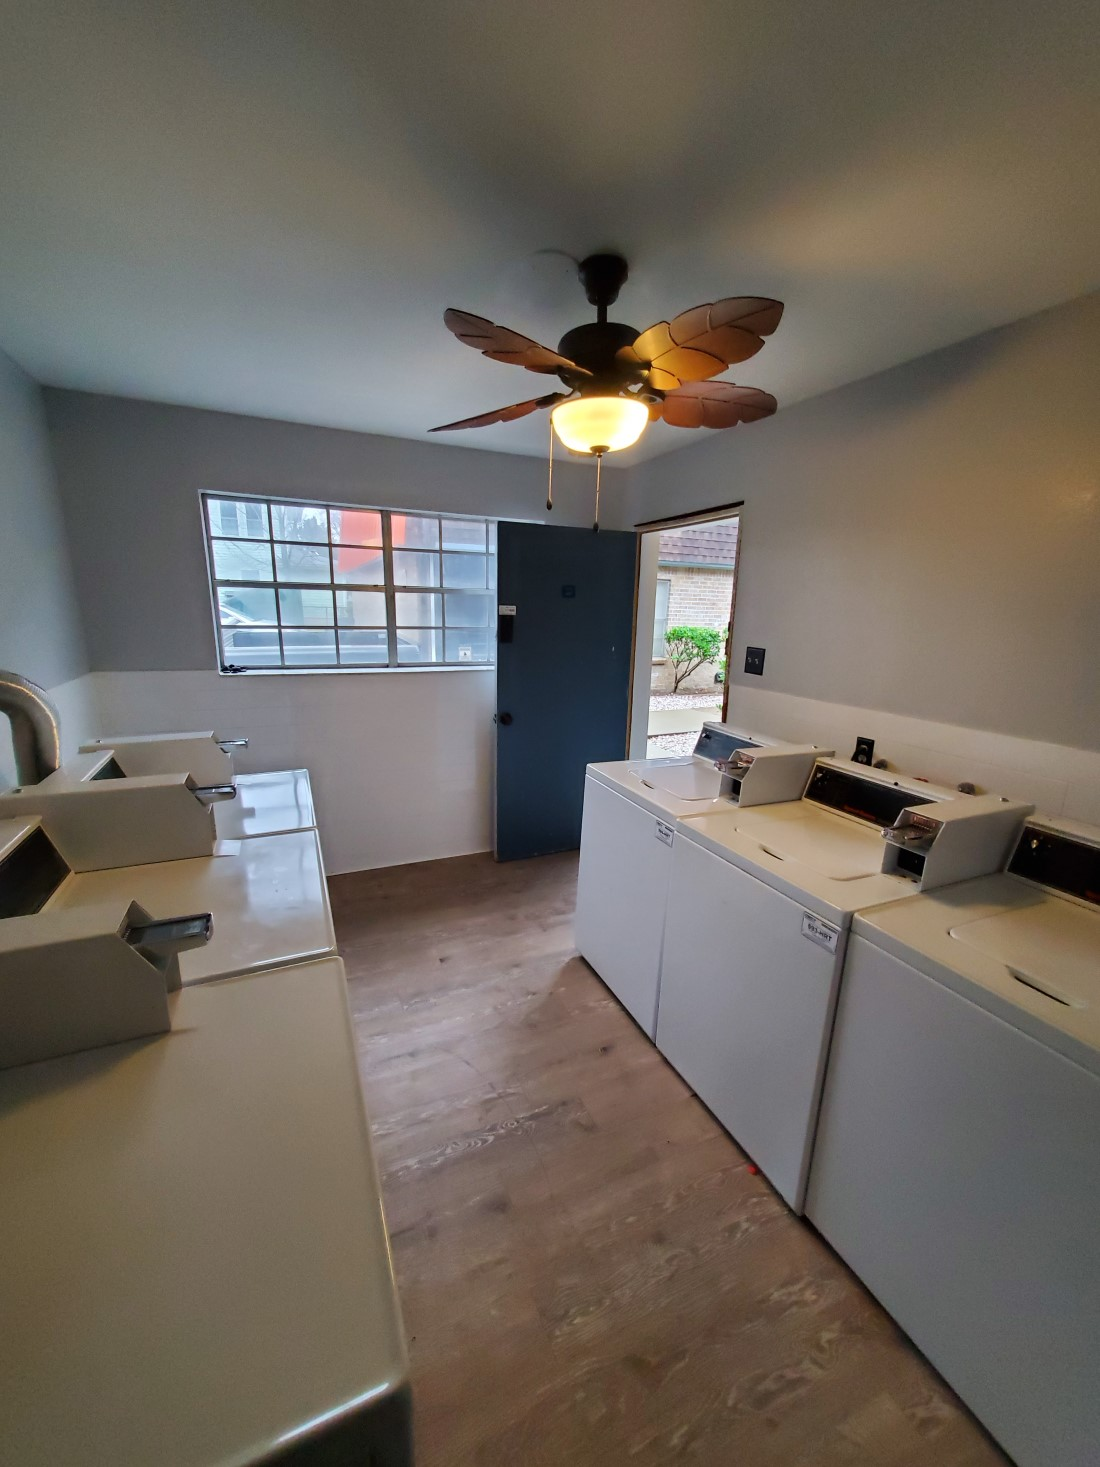 Laundry Area at Live Oak Apartments in Huntsville, Texas